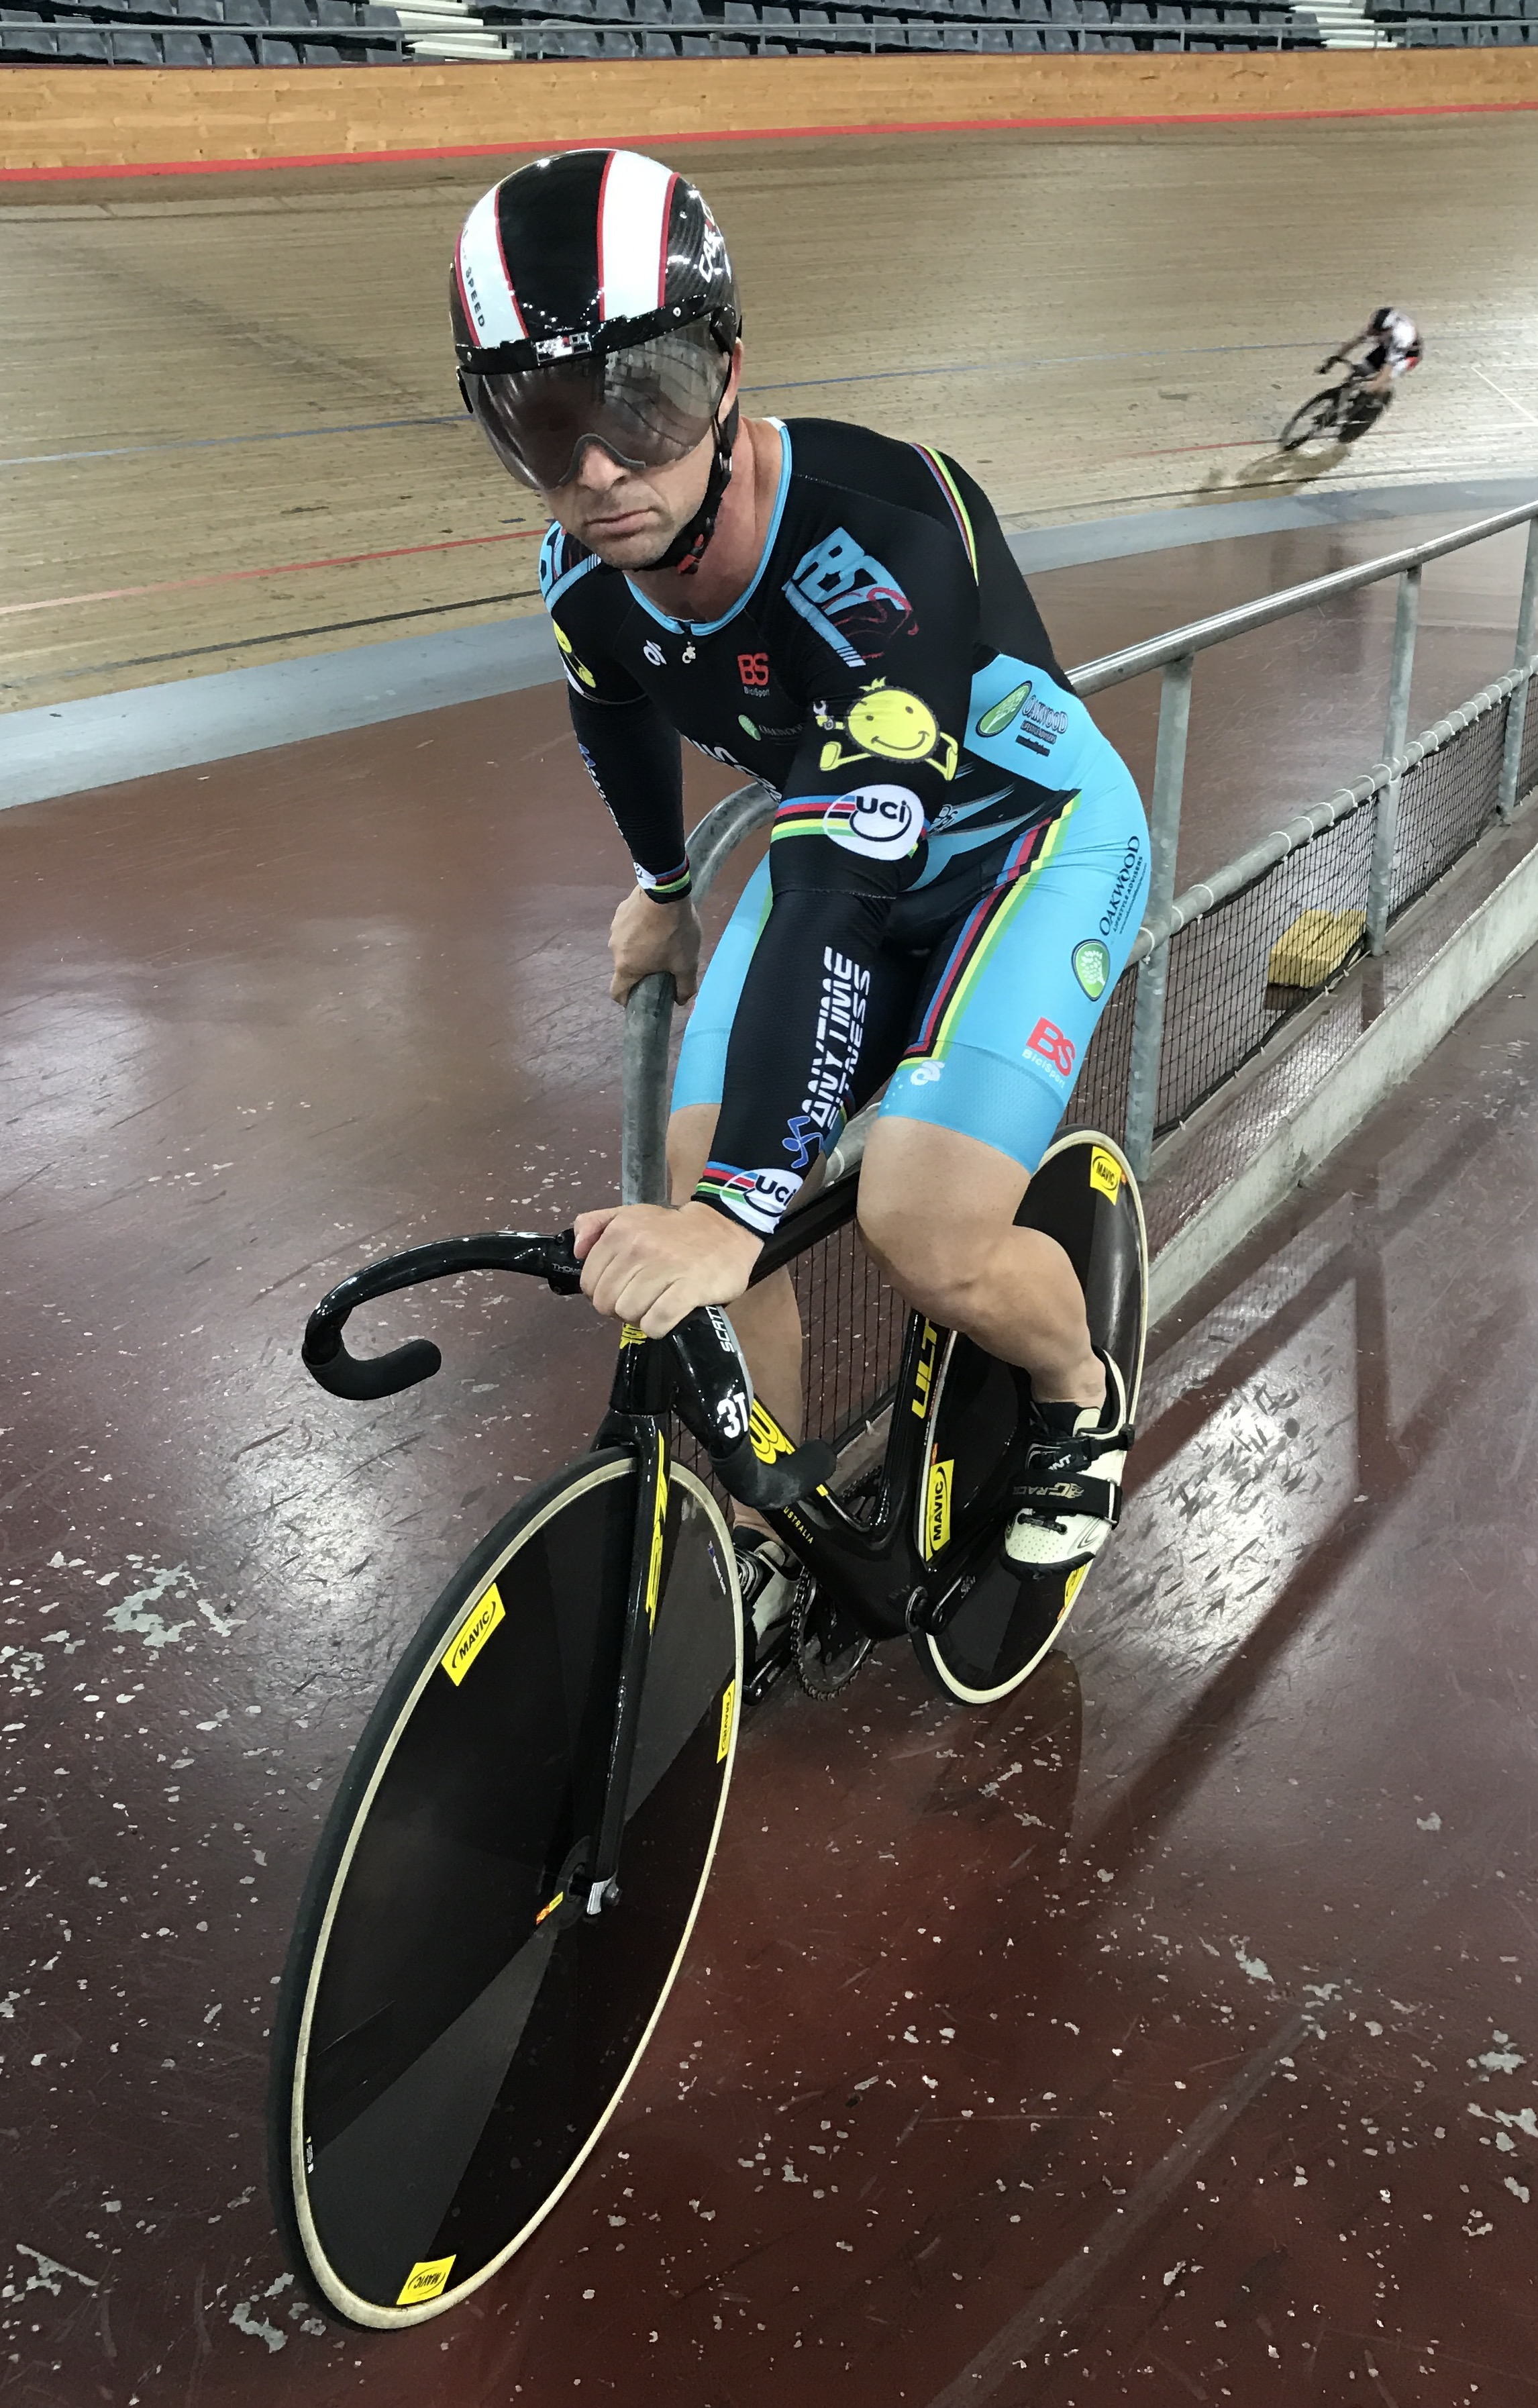 National Masters Track 2017 - Mike Smith before the start of the Team Sprint where he took Gold. The bands around the sleeves denotes a reigning UCI World Champion from Manchester 2016.